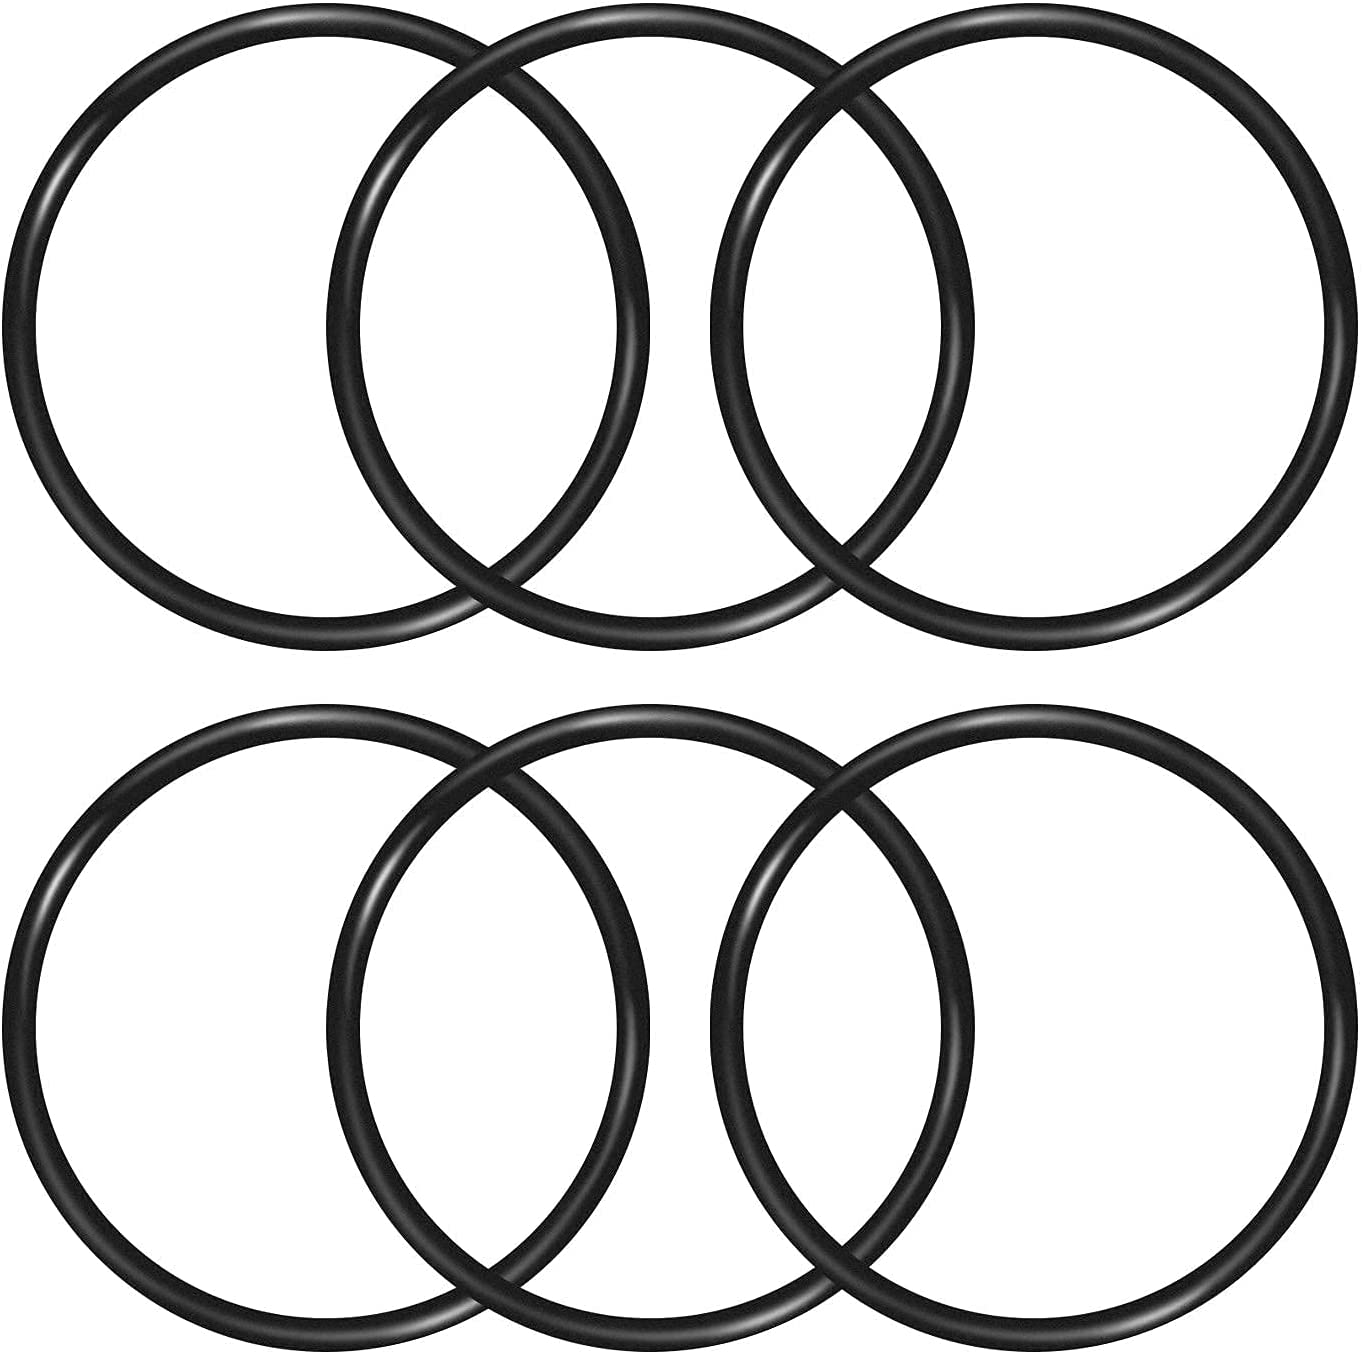 KOHUIPU O-Rings replace Classic GE TM Inch Filters New sales Compatibl 2.5 Water